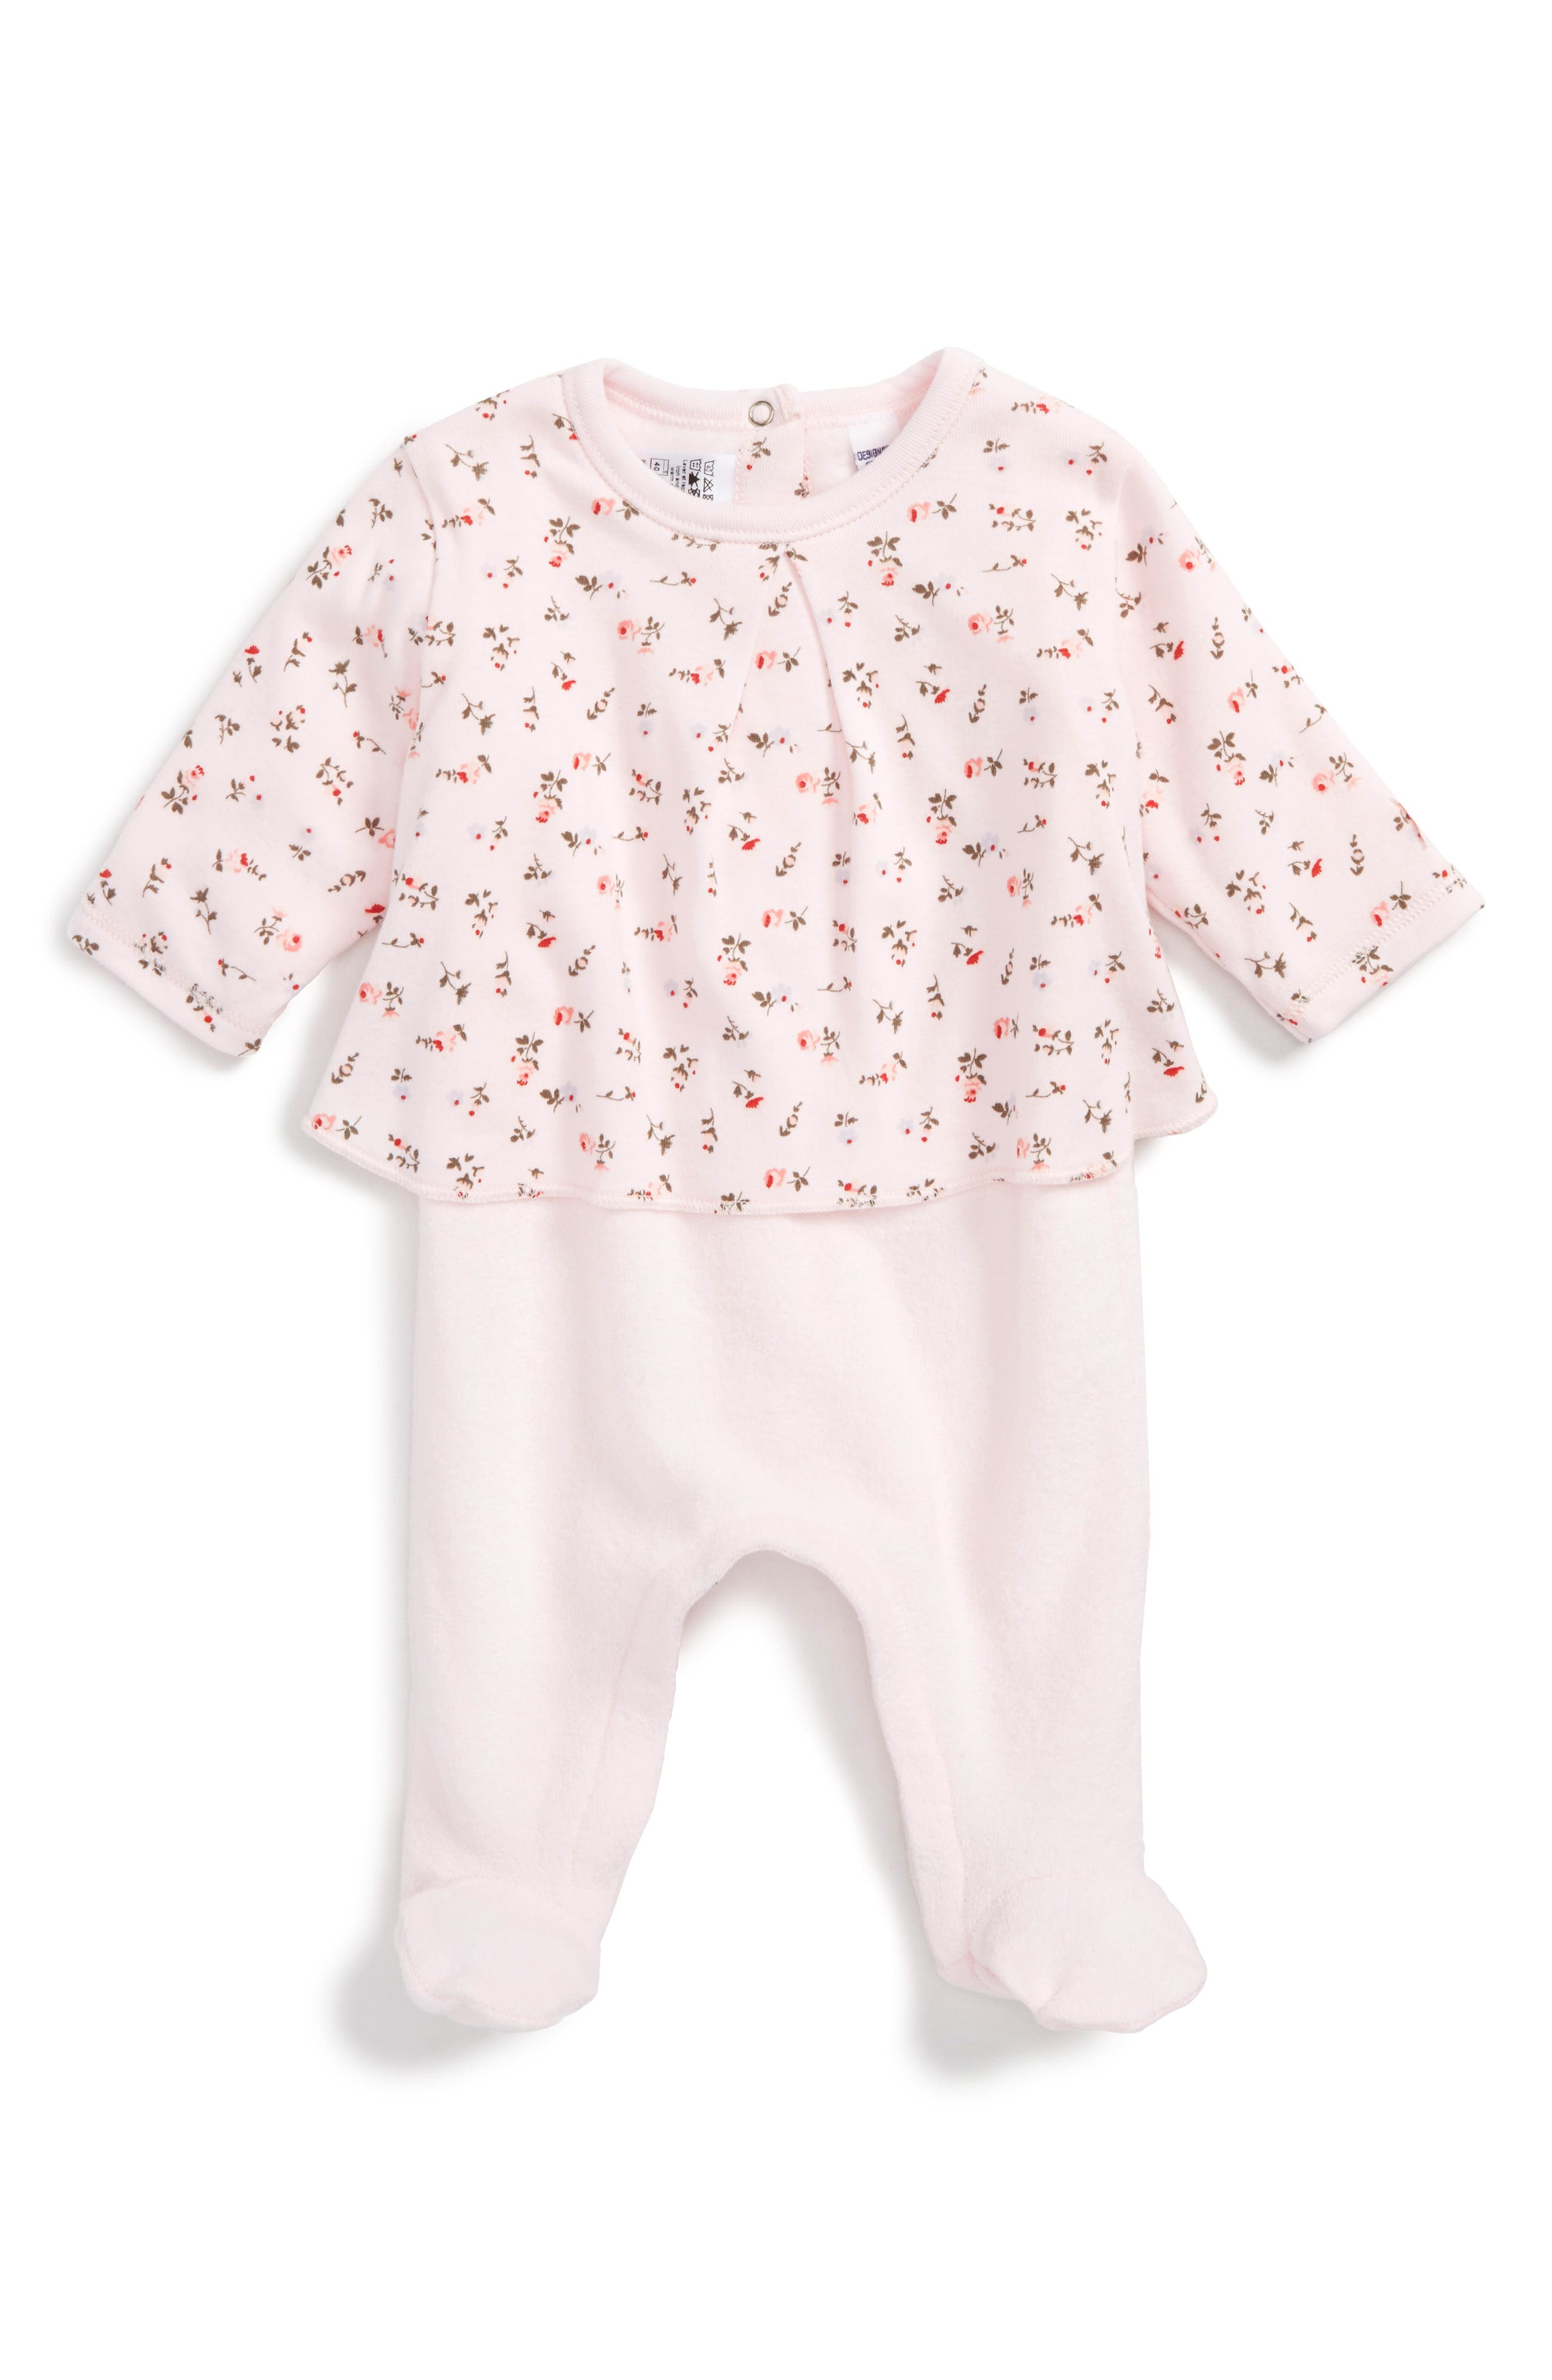 Main Image - Petit Bateau French Terry Footie (Baby Girls)